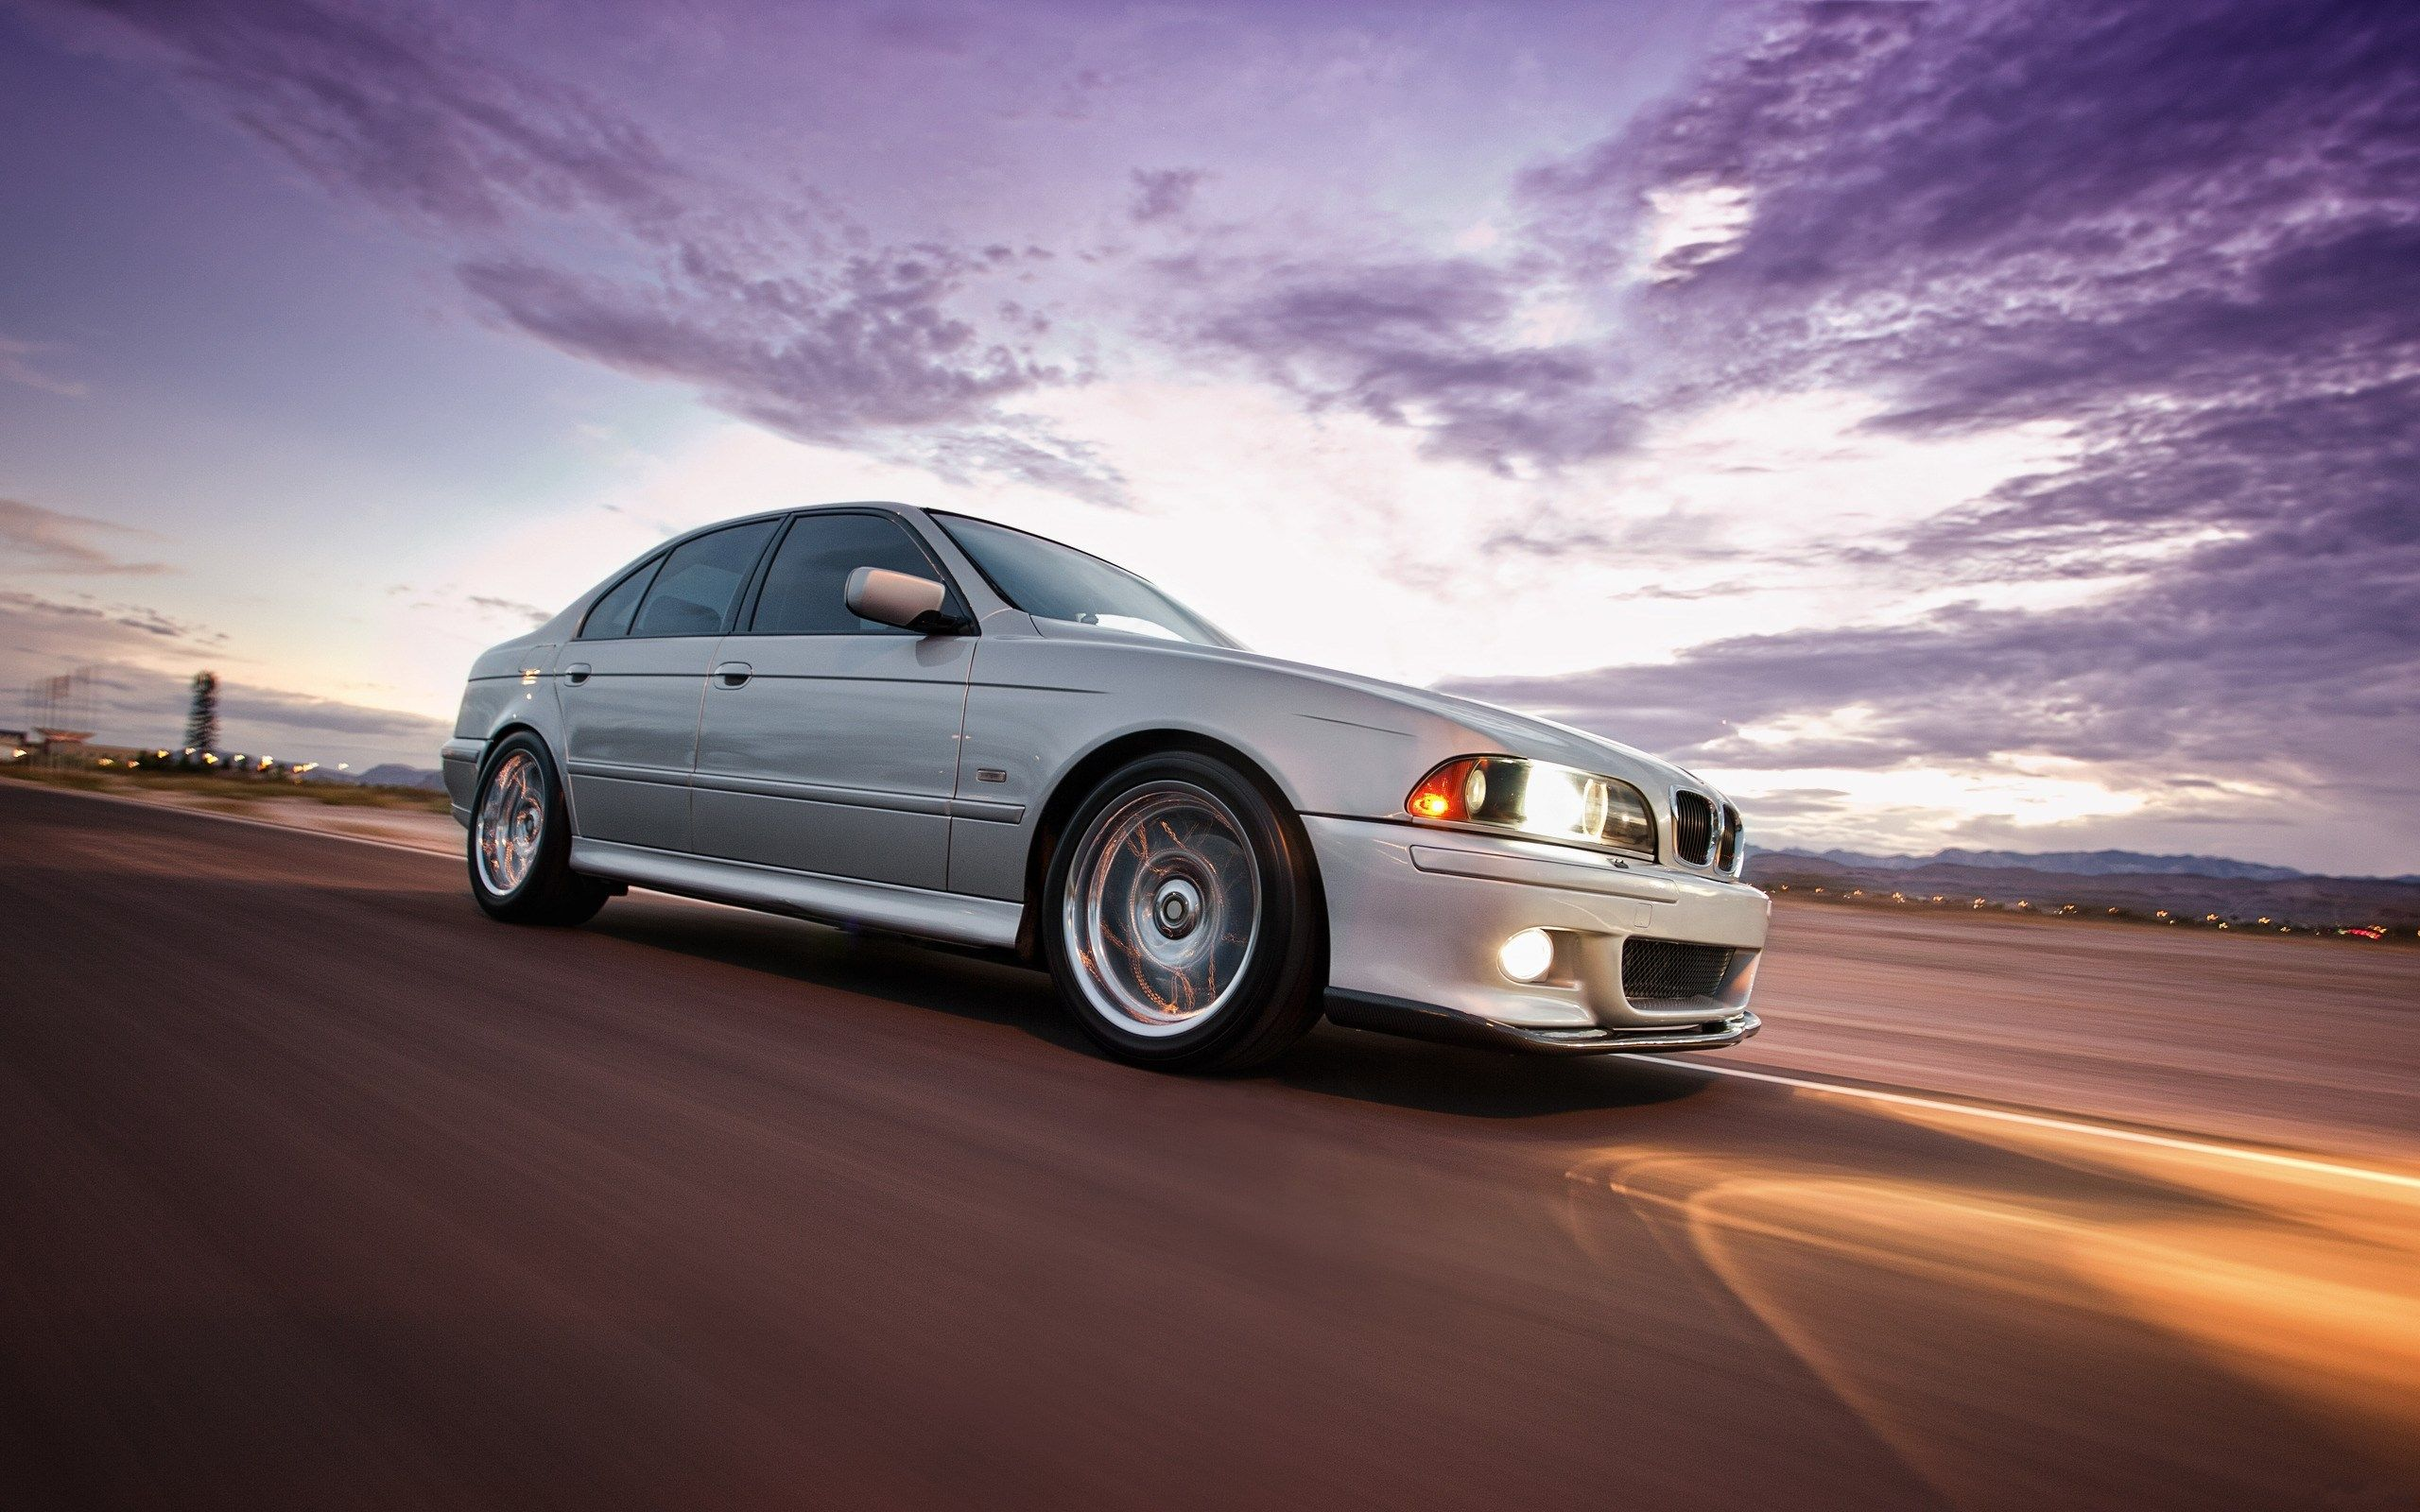 BMW E39 Wallpapers - Top Free BMW E39 Backgrounds - WallpaperAccess